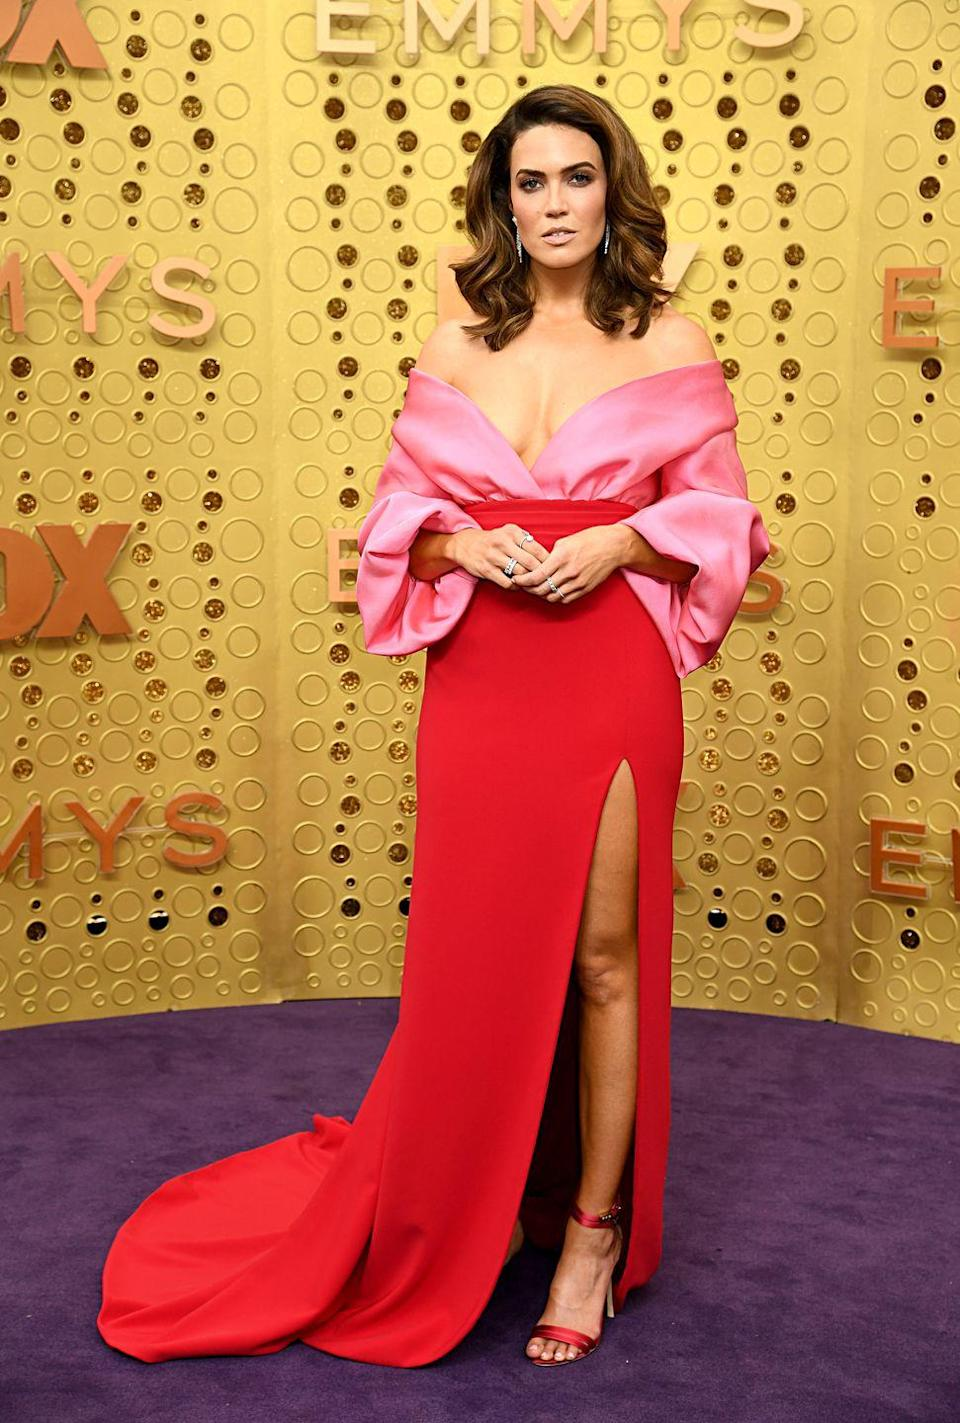 <p>Mandy Moore was just one of many who stepped out in a bold two-tone red and pink gown at the 2019 Emmy Awards. But her Brandon Maxwell was undeniably a hit, with a portrait neckline and body-hugging skirt.</p>